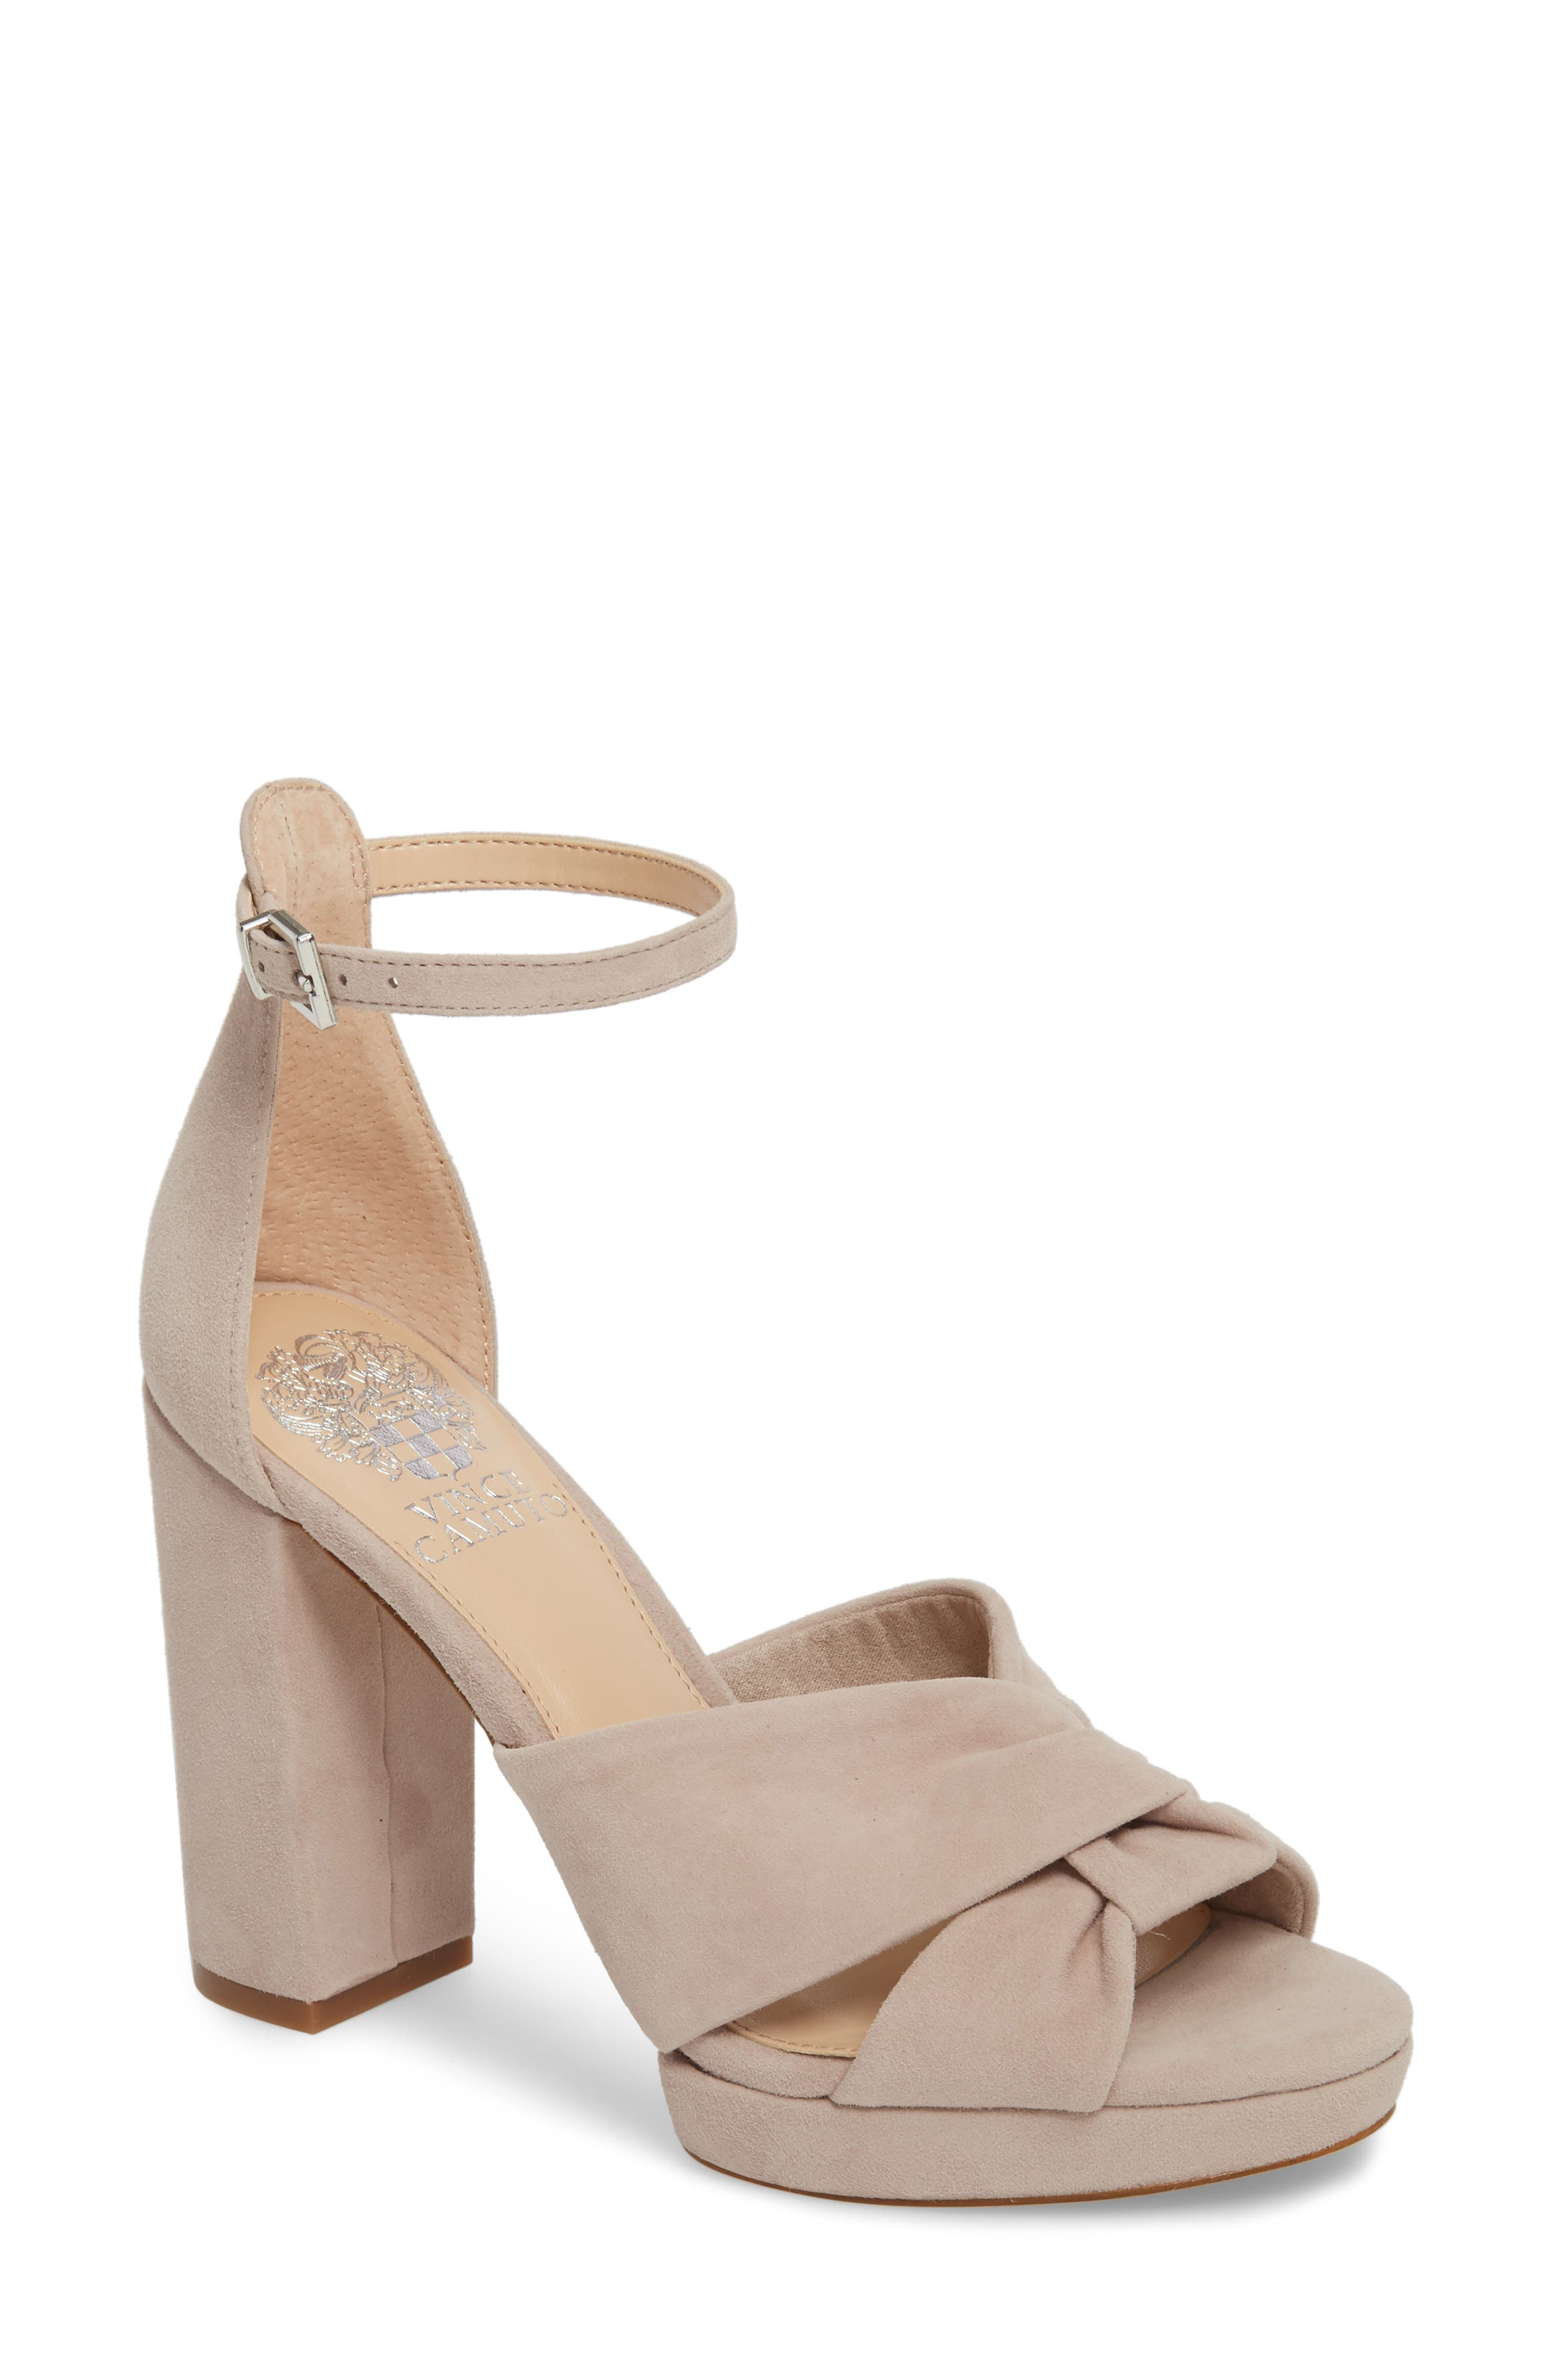 Corlesta Sandal,                         Main,                         color, TIPSY TAUPE SUEDE